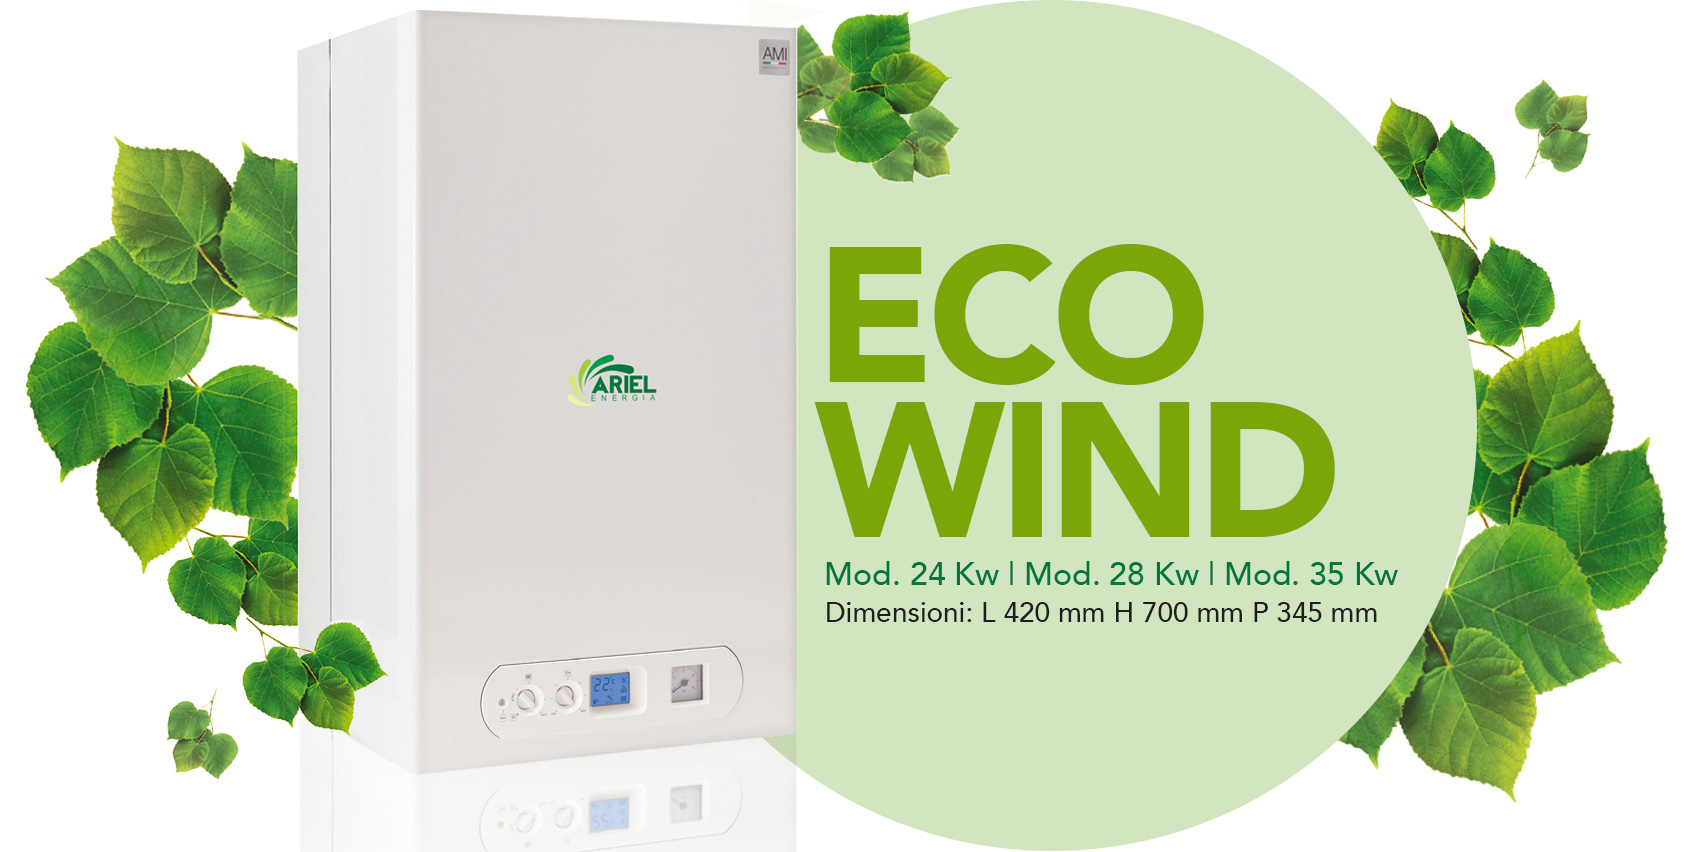 Topimage-eco-wind-2